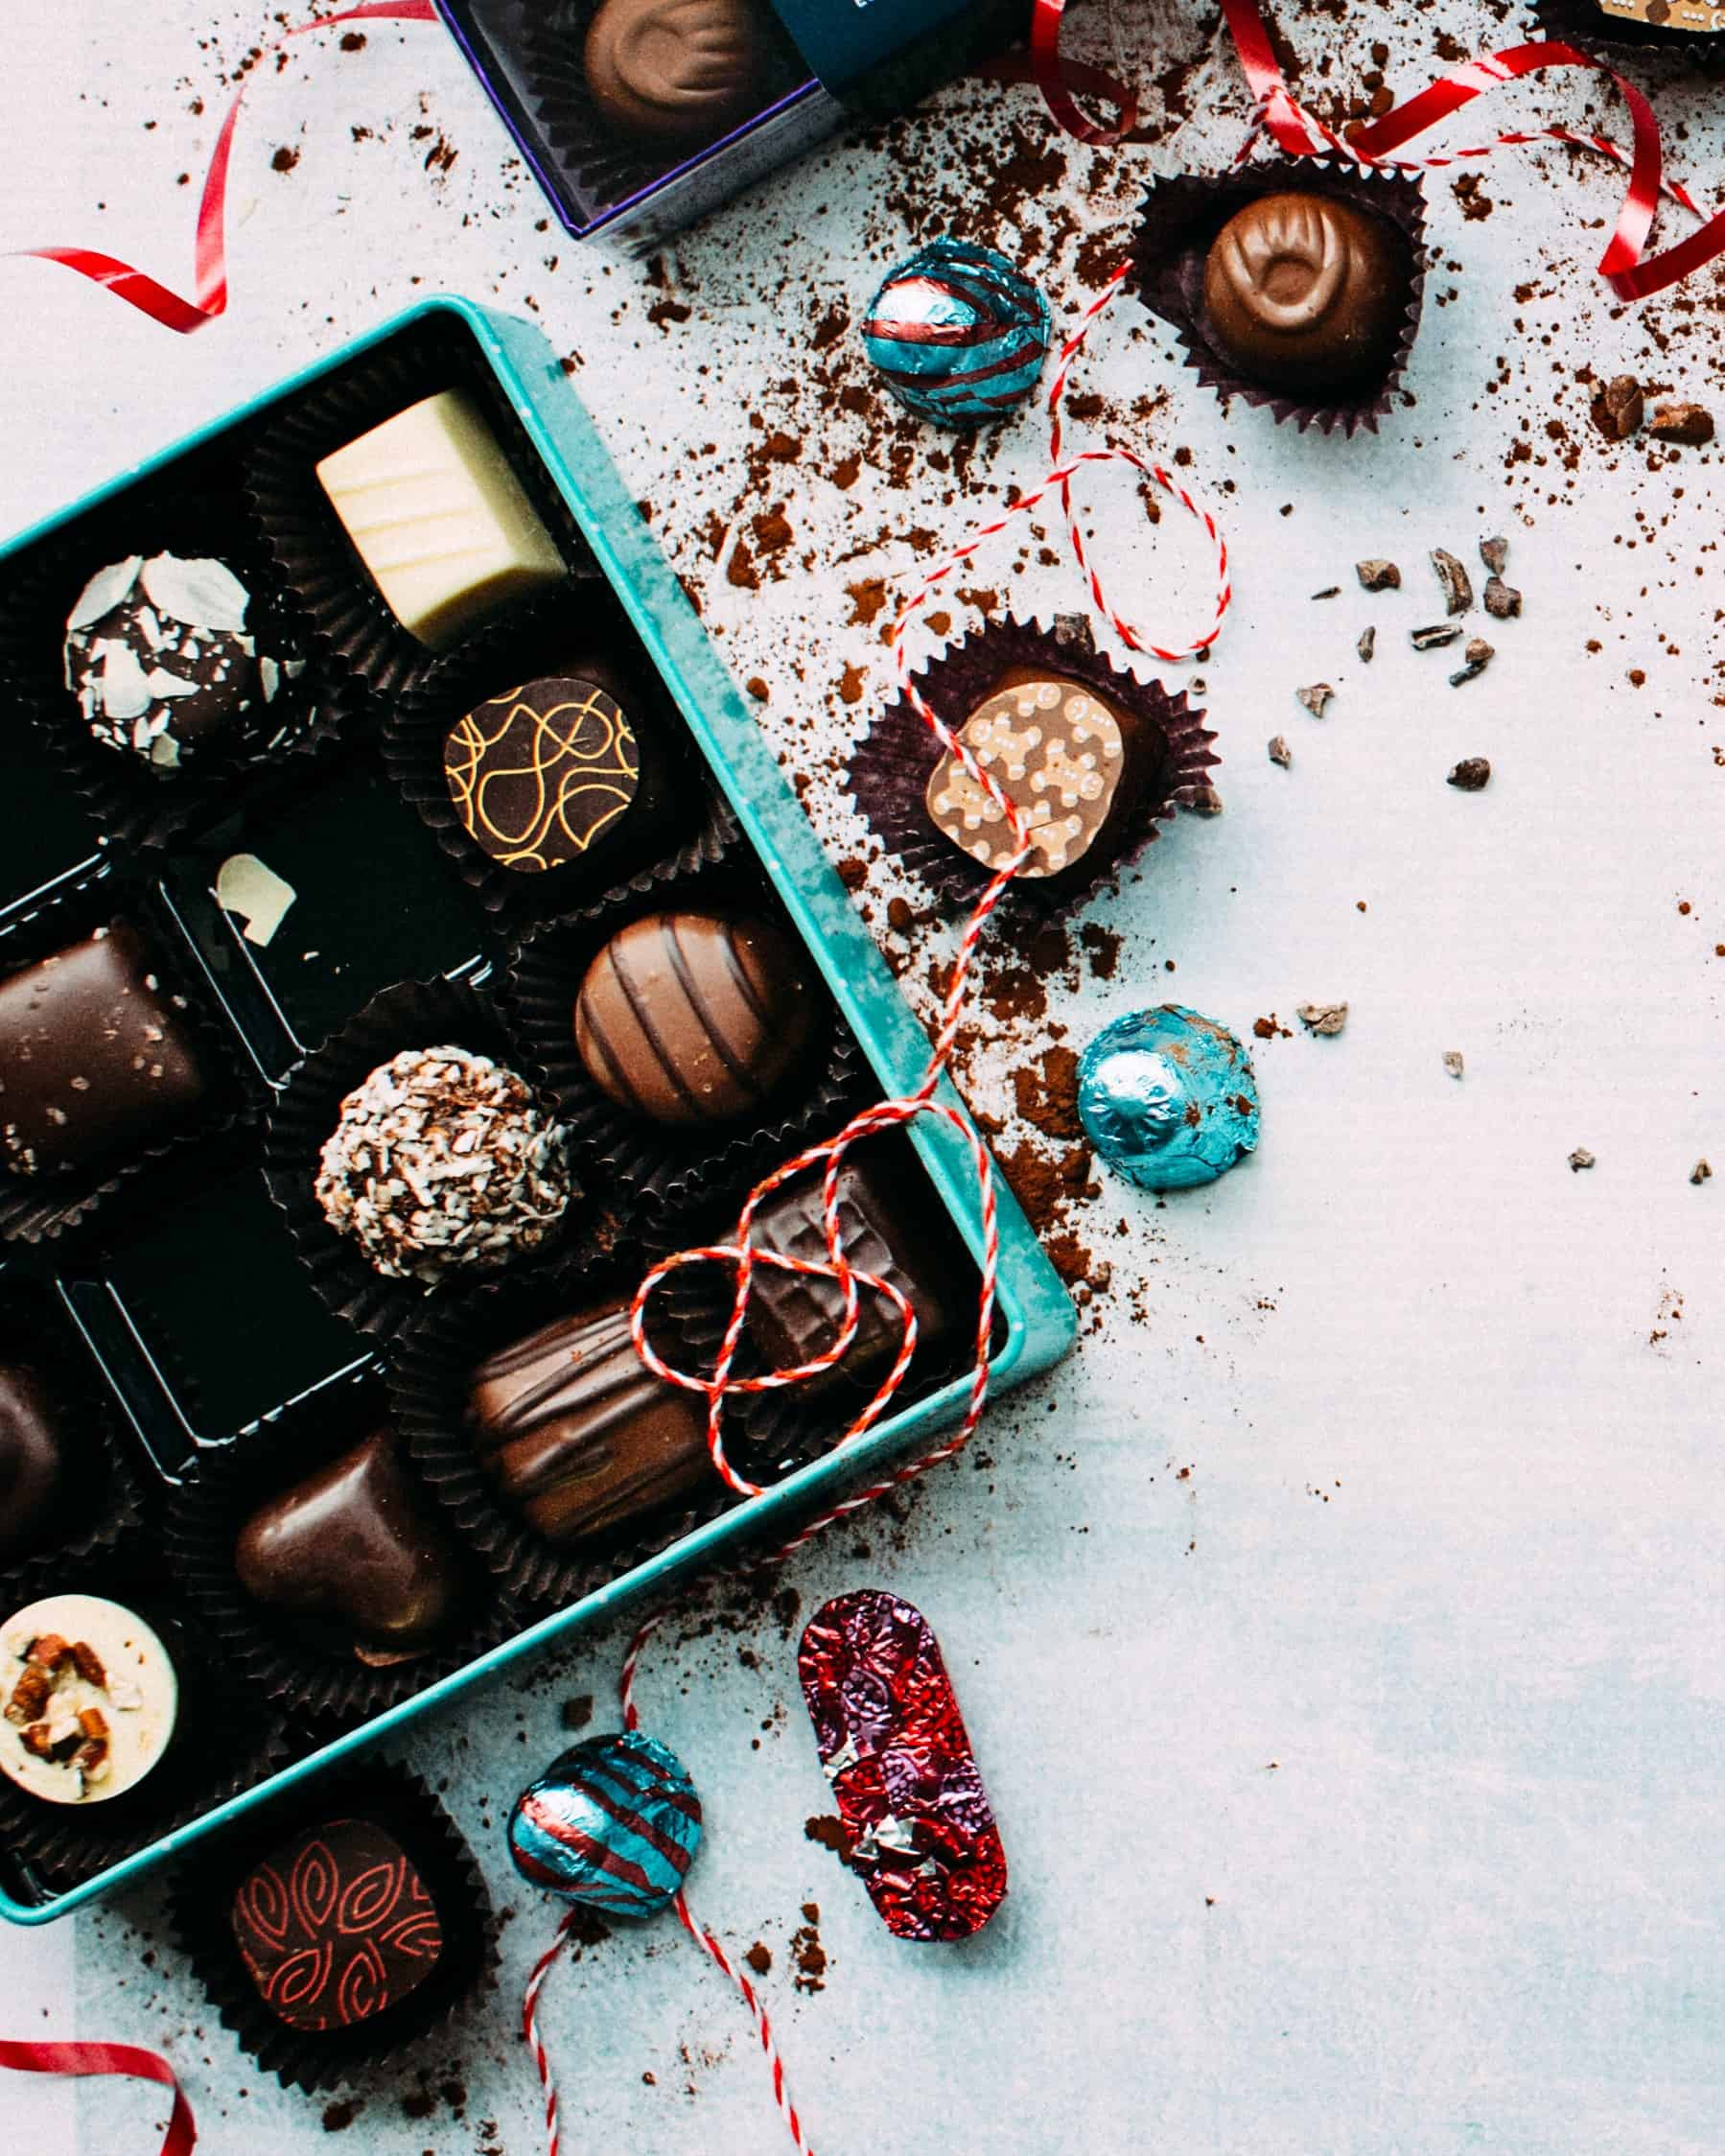 Few Important Tips To Choose Your Sugar-Free Christmas Desserts